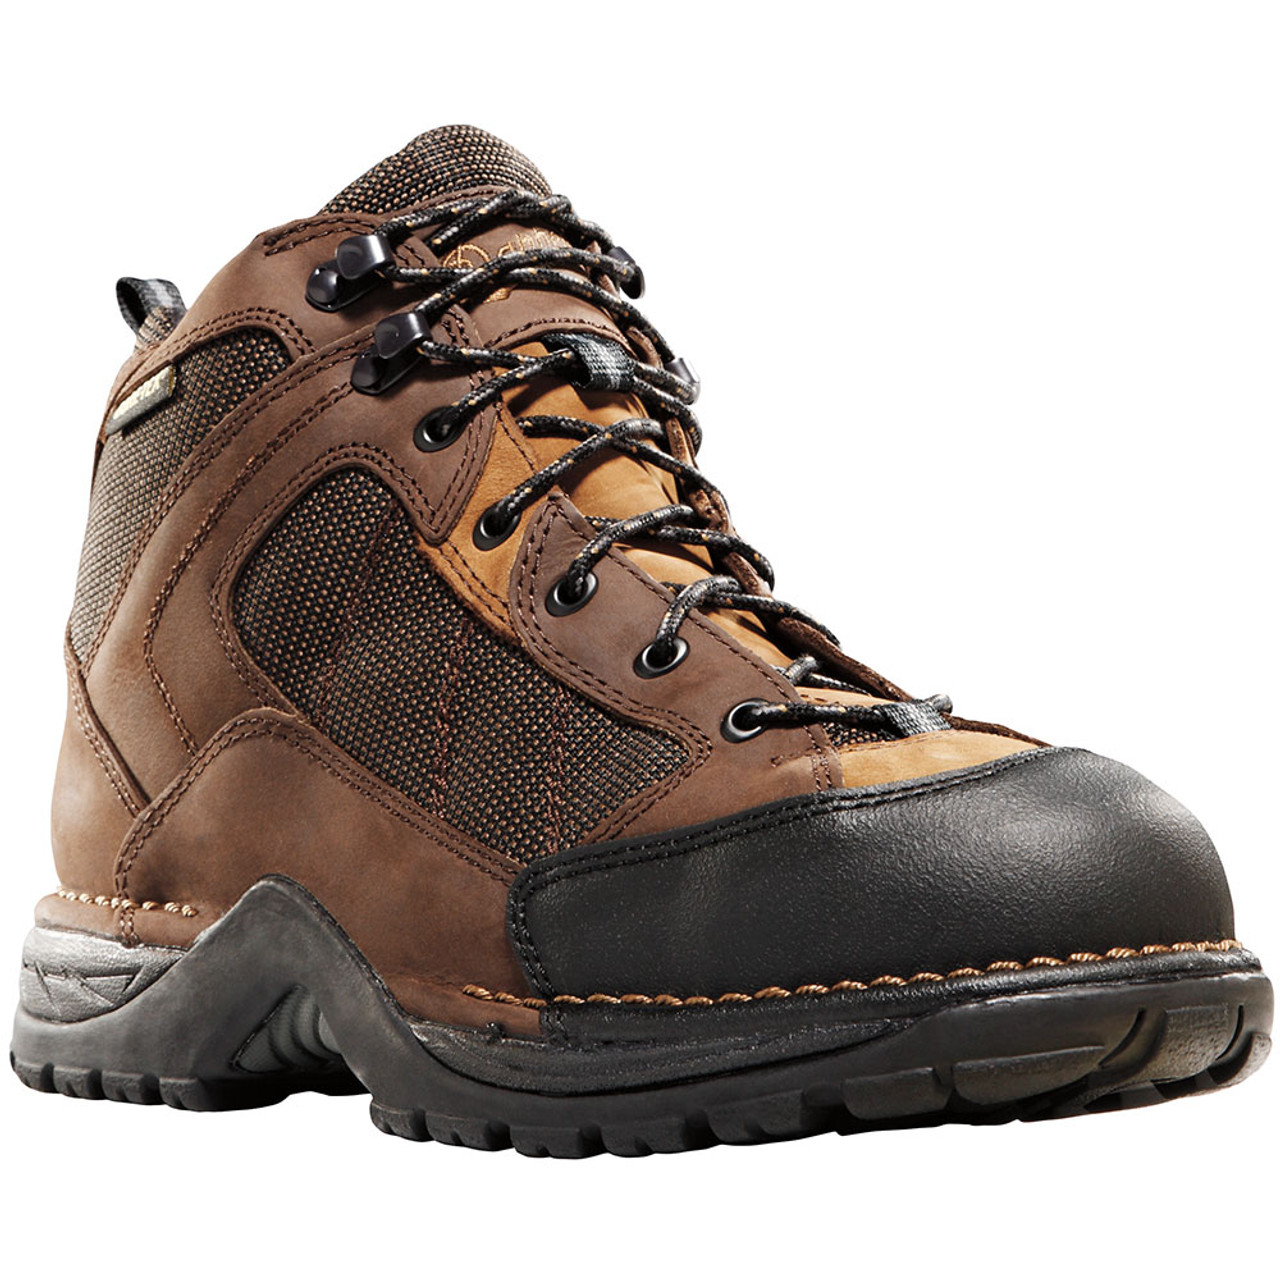 62695280dcf Danner Radical 452 GTX Brown Hiking Boots